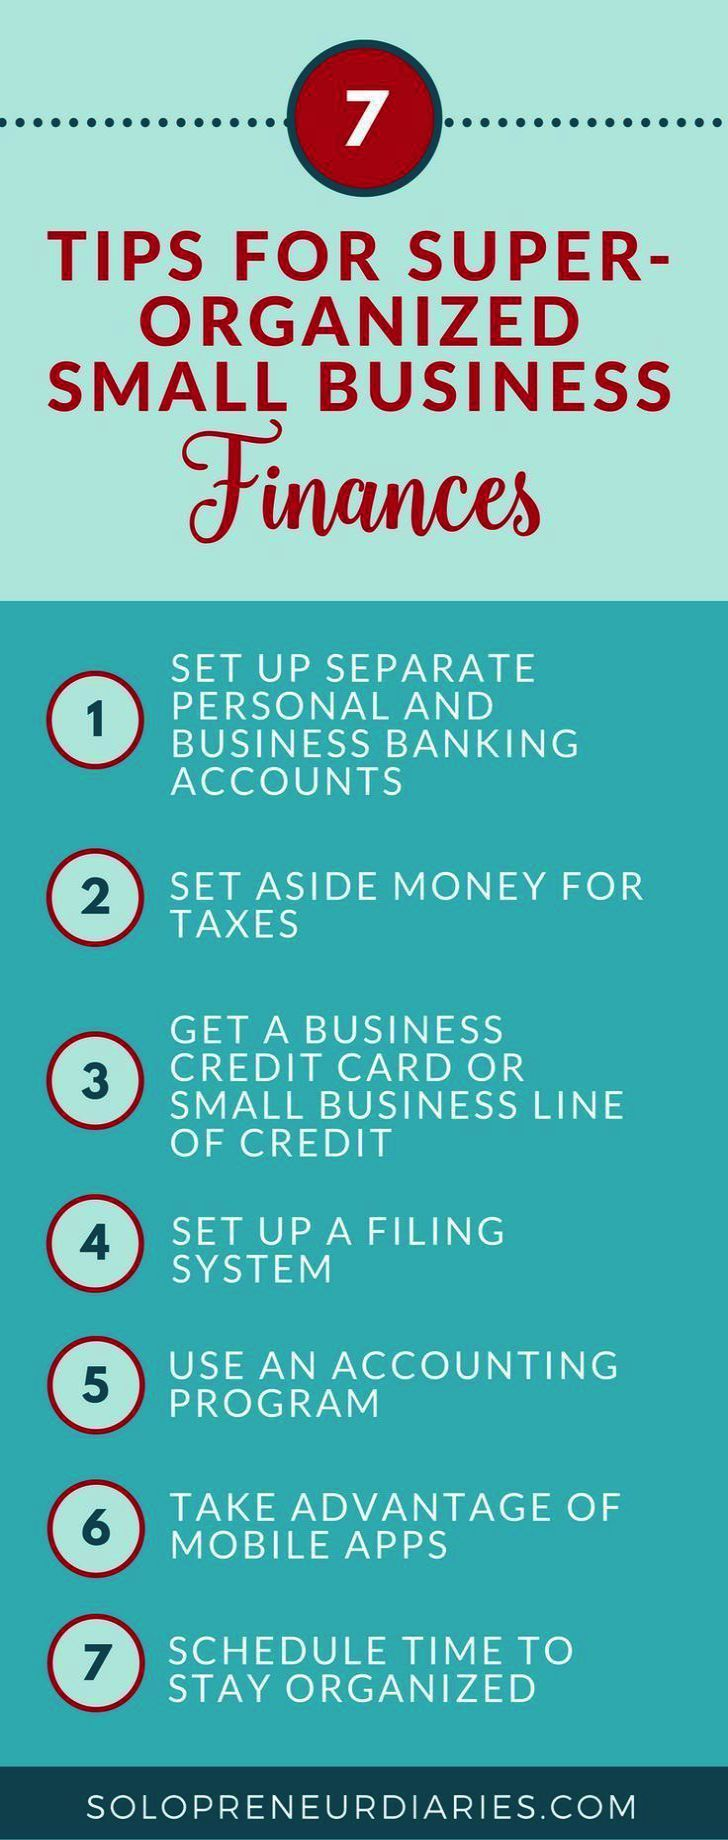 Home Business Ideas In Jamaica Hobbies For Couples Start Up